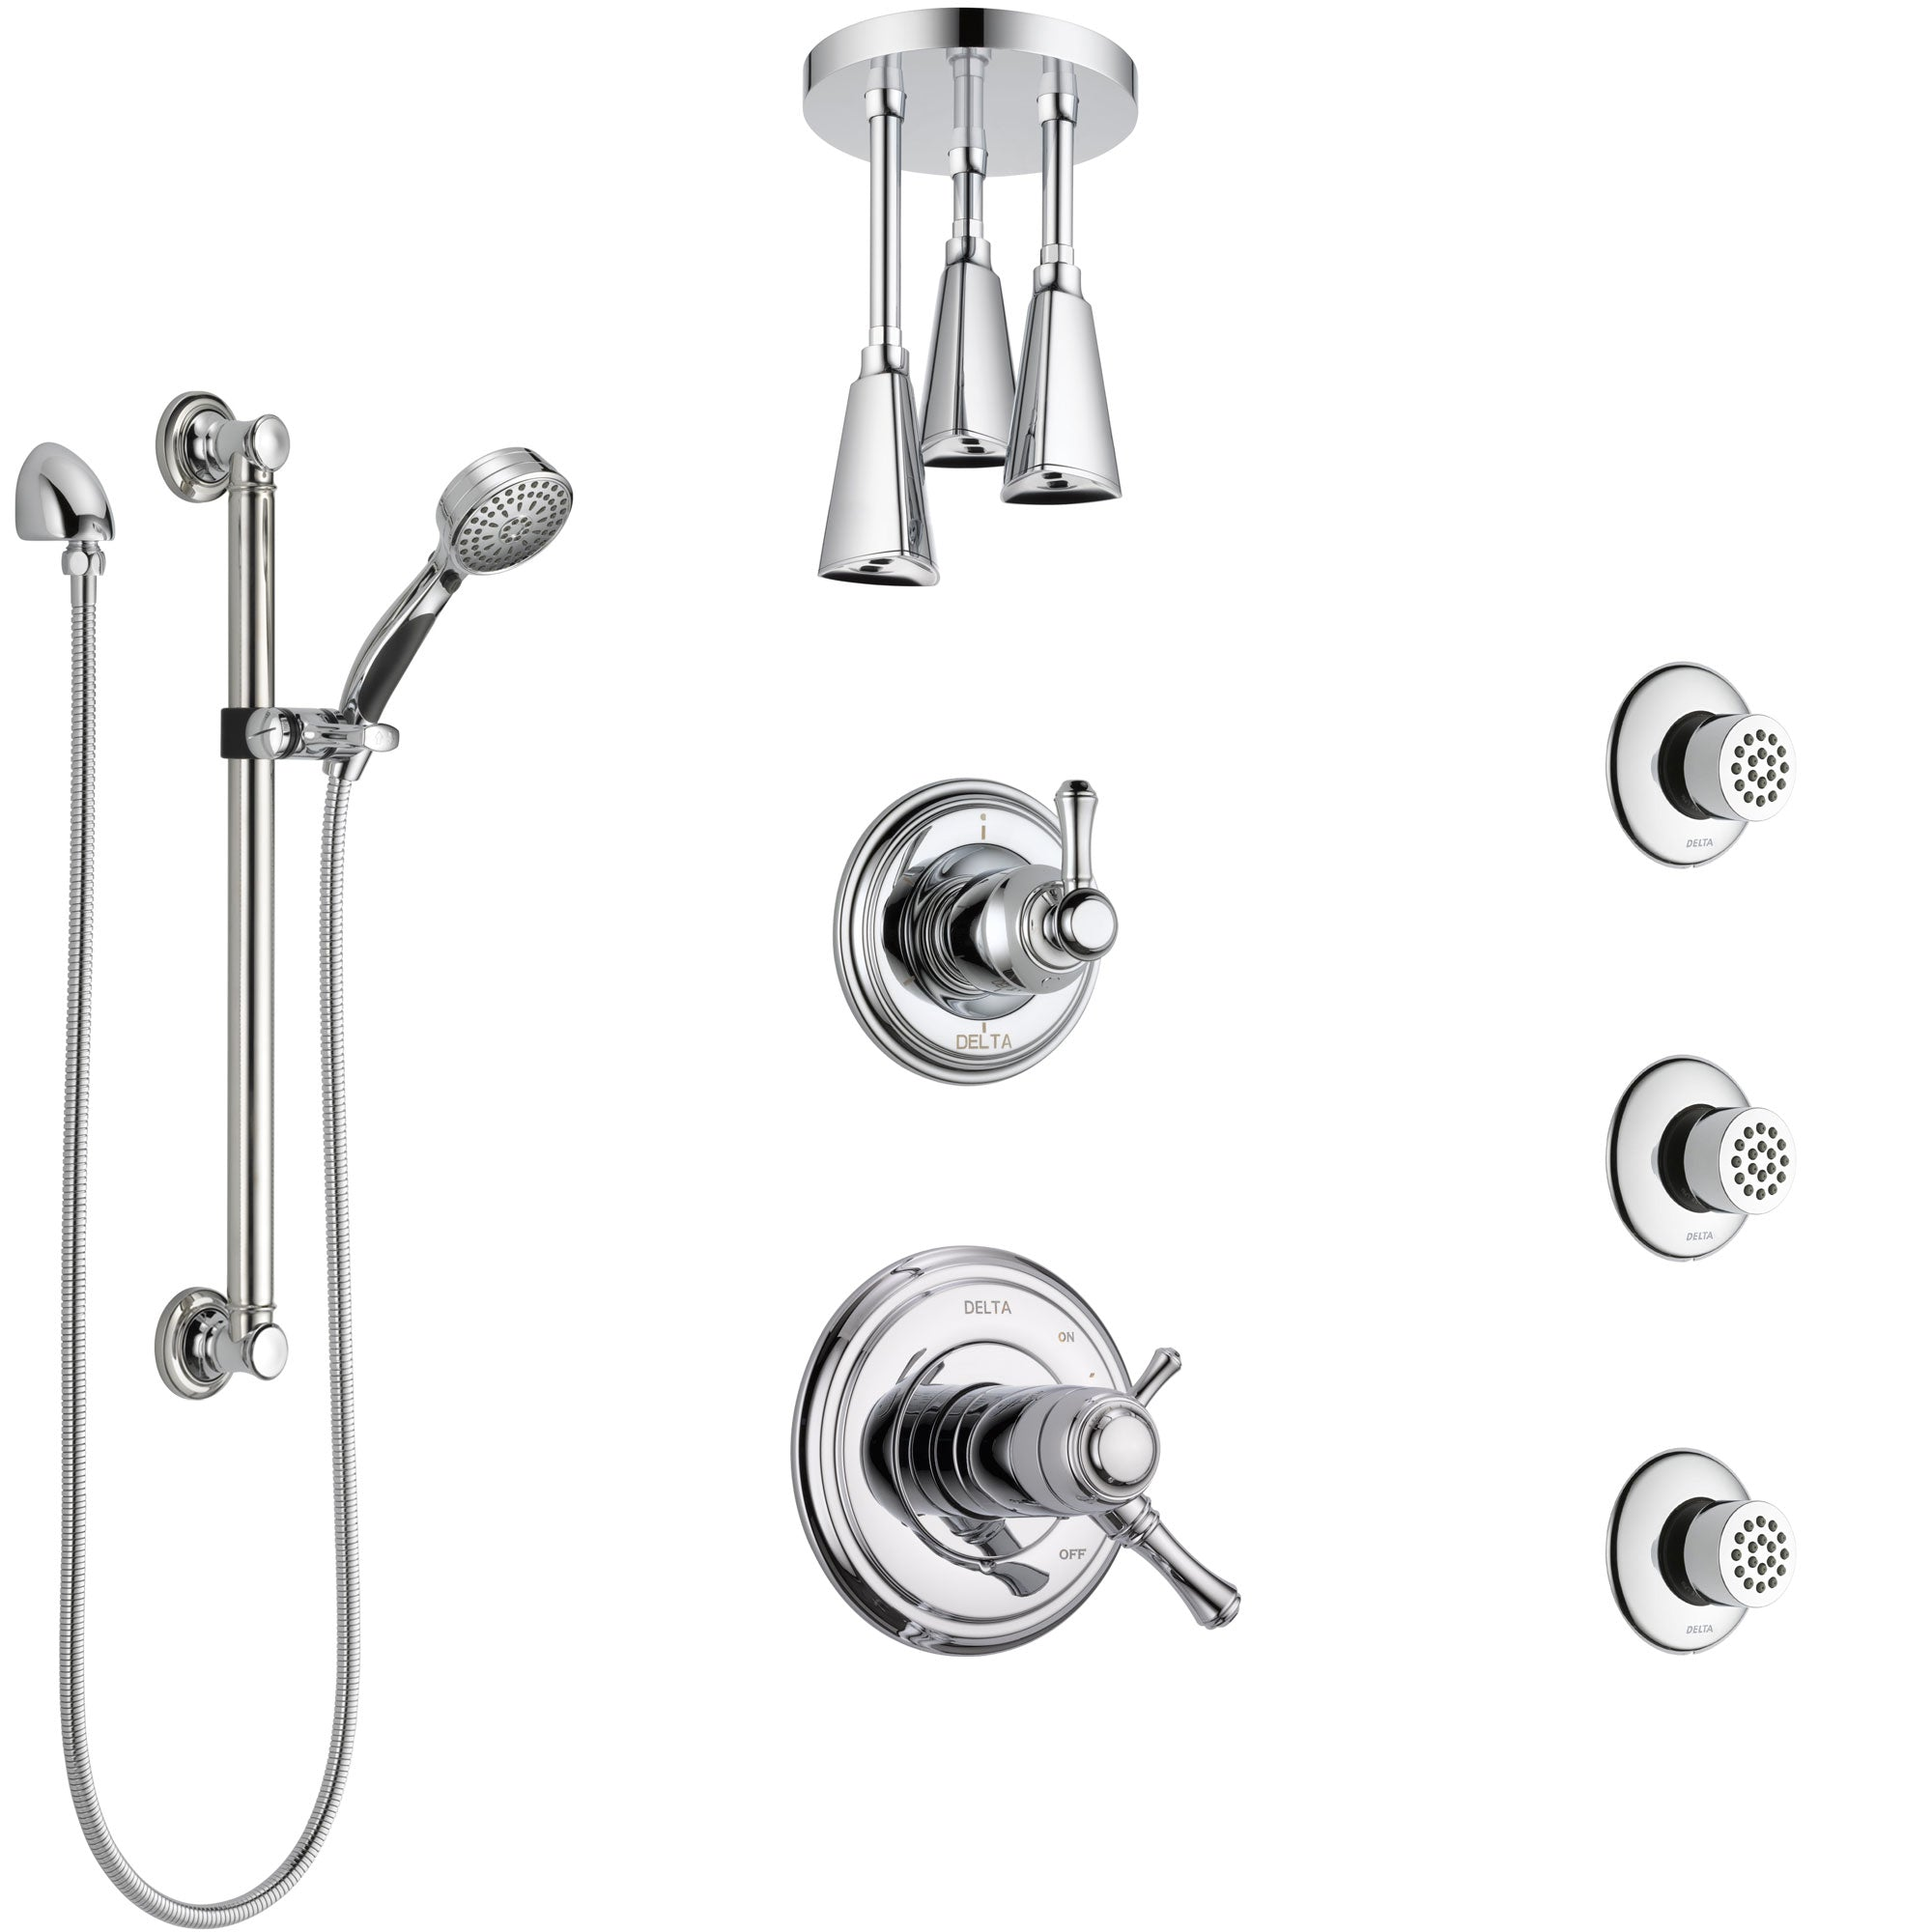 Delta Cassidy Chrome Shower System with Dual Thermostatic Control, Diverter, Ceiling Showerhead, 3 Body Sprays, and Grab Bar Hand Shower SS17T9713